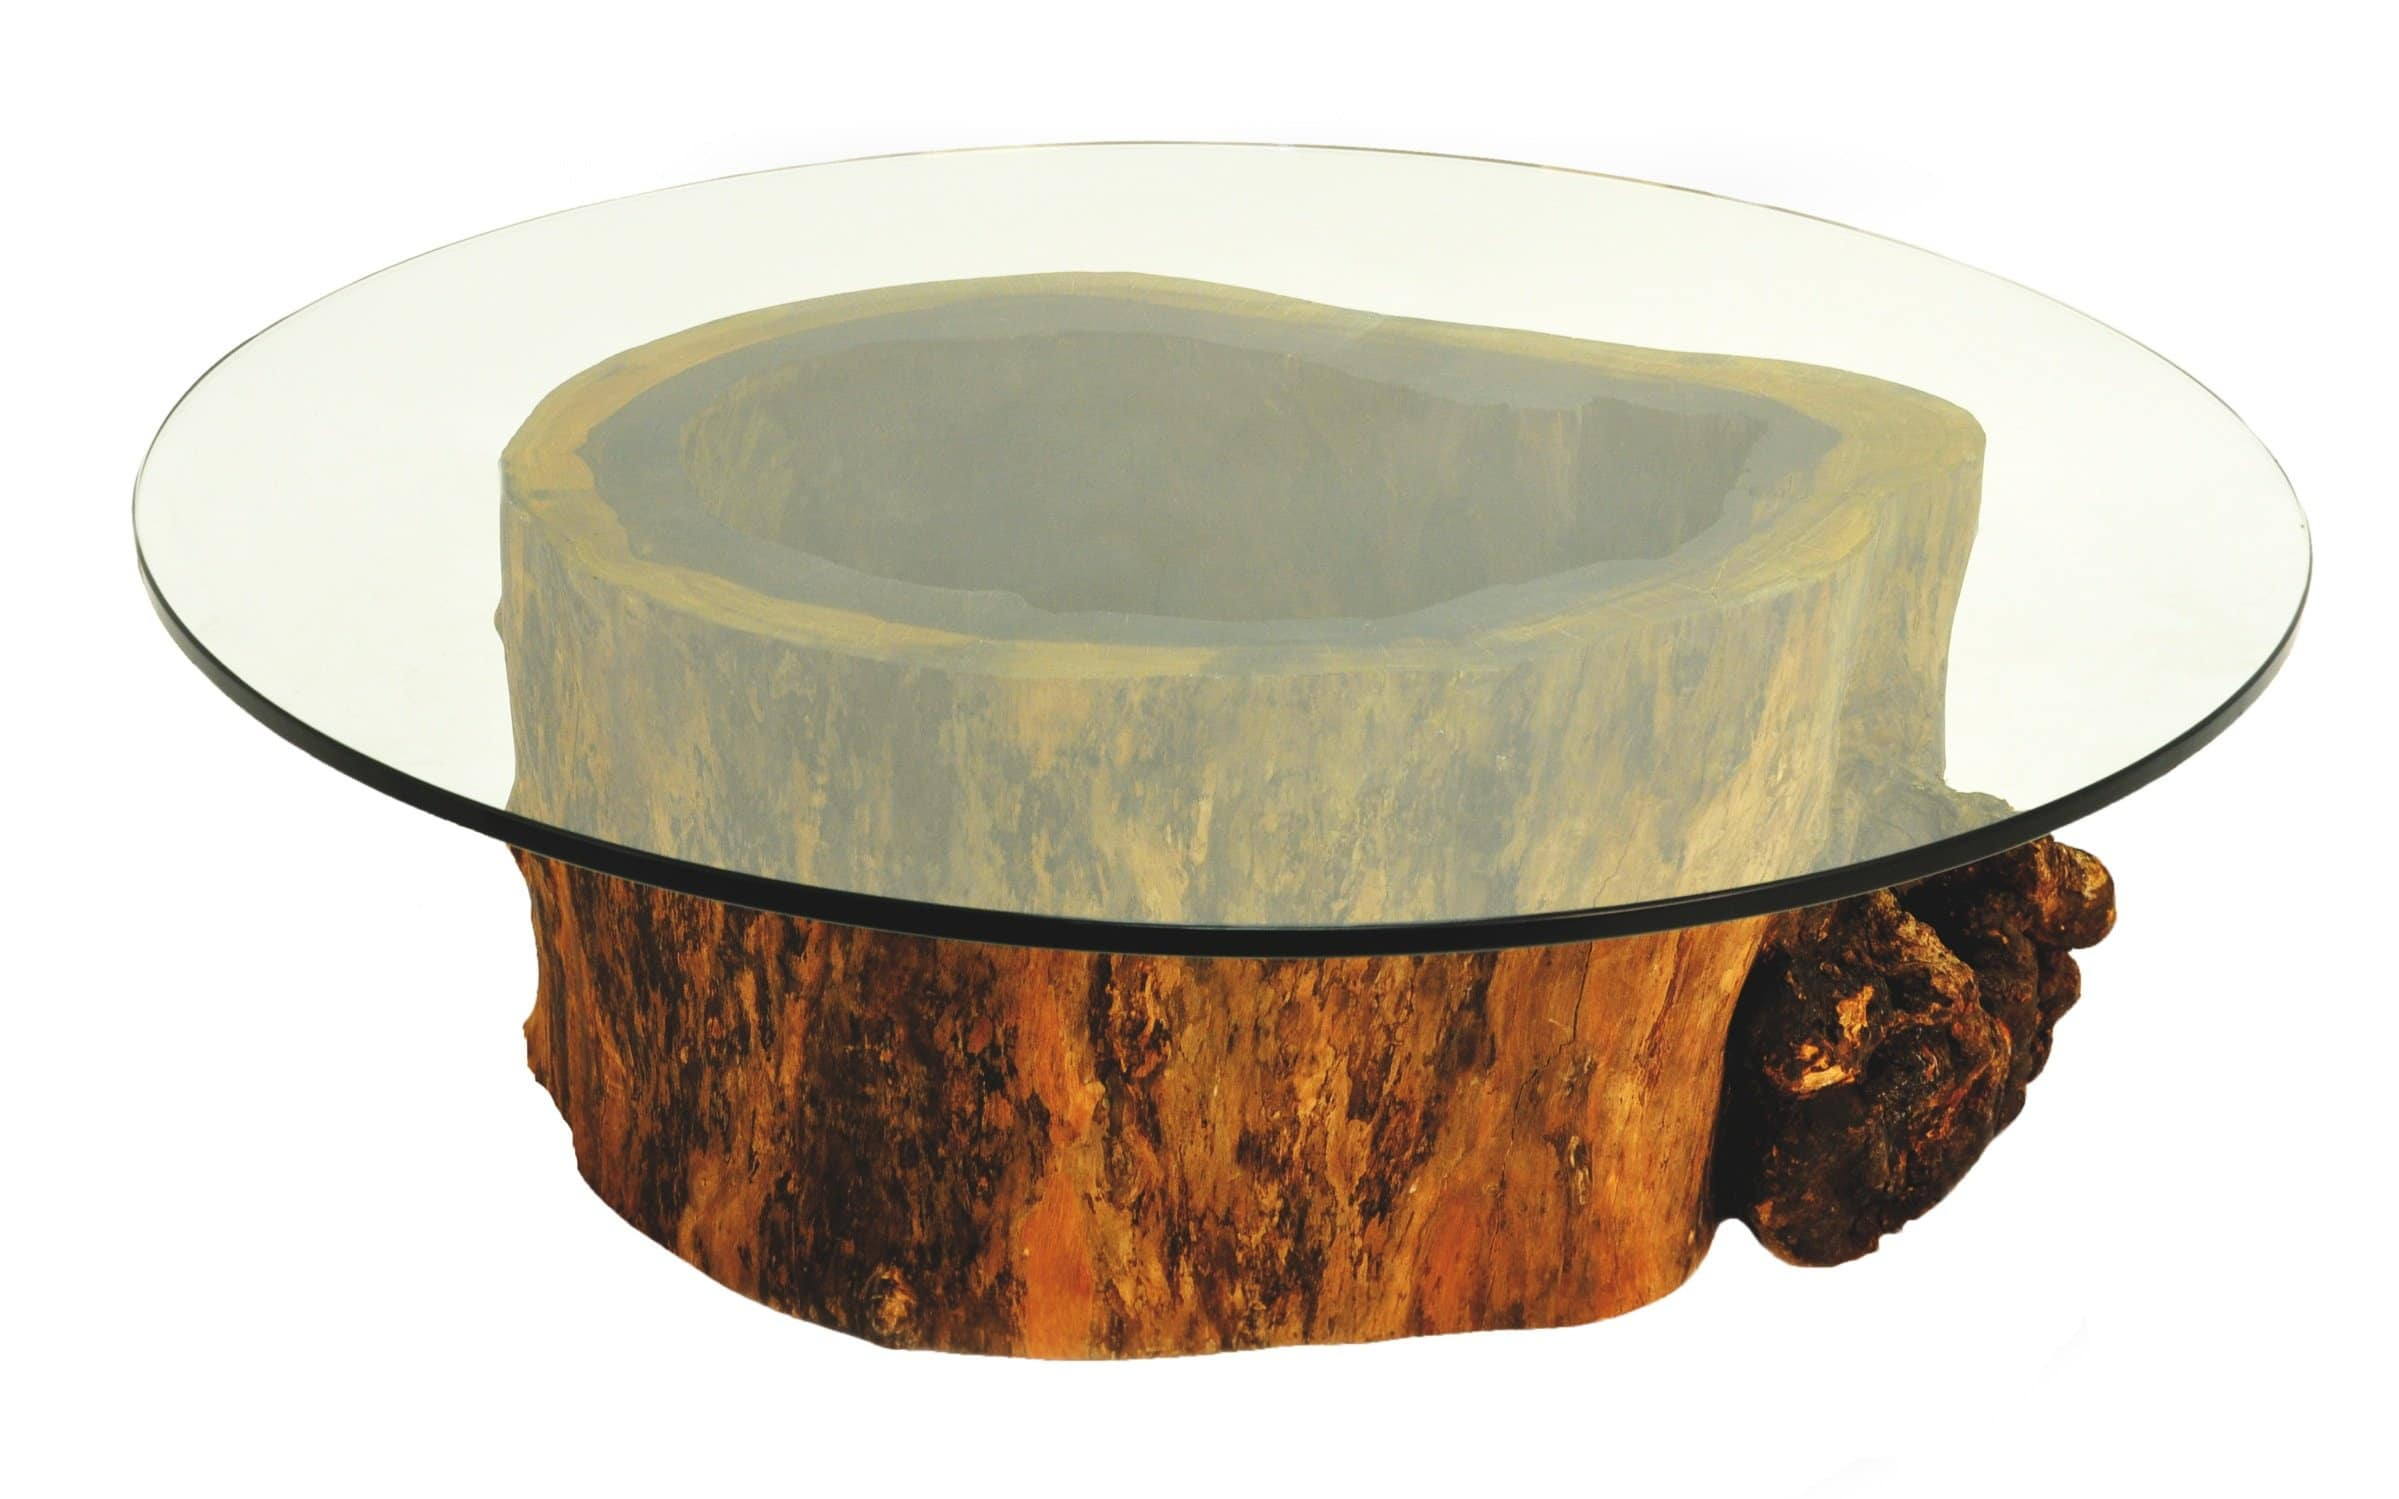 Glass Top Tree Stump Coffee Table